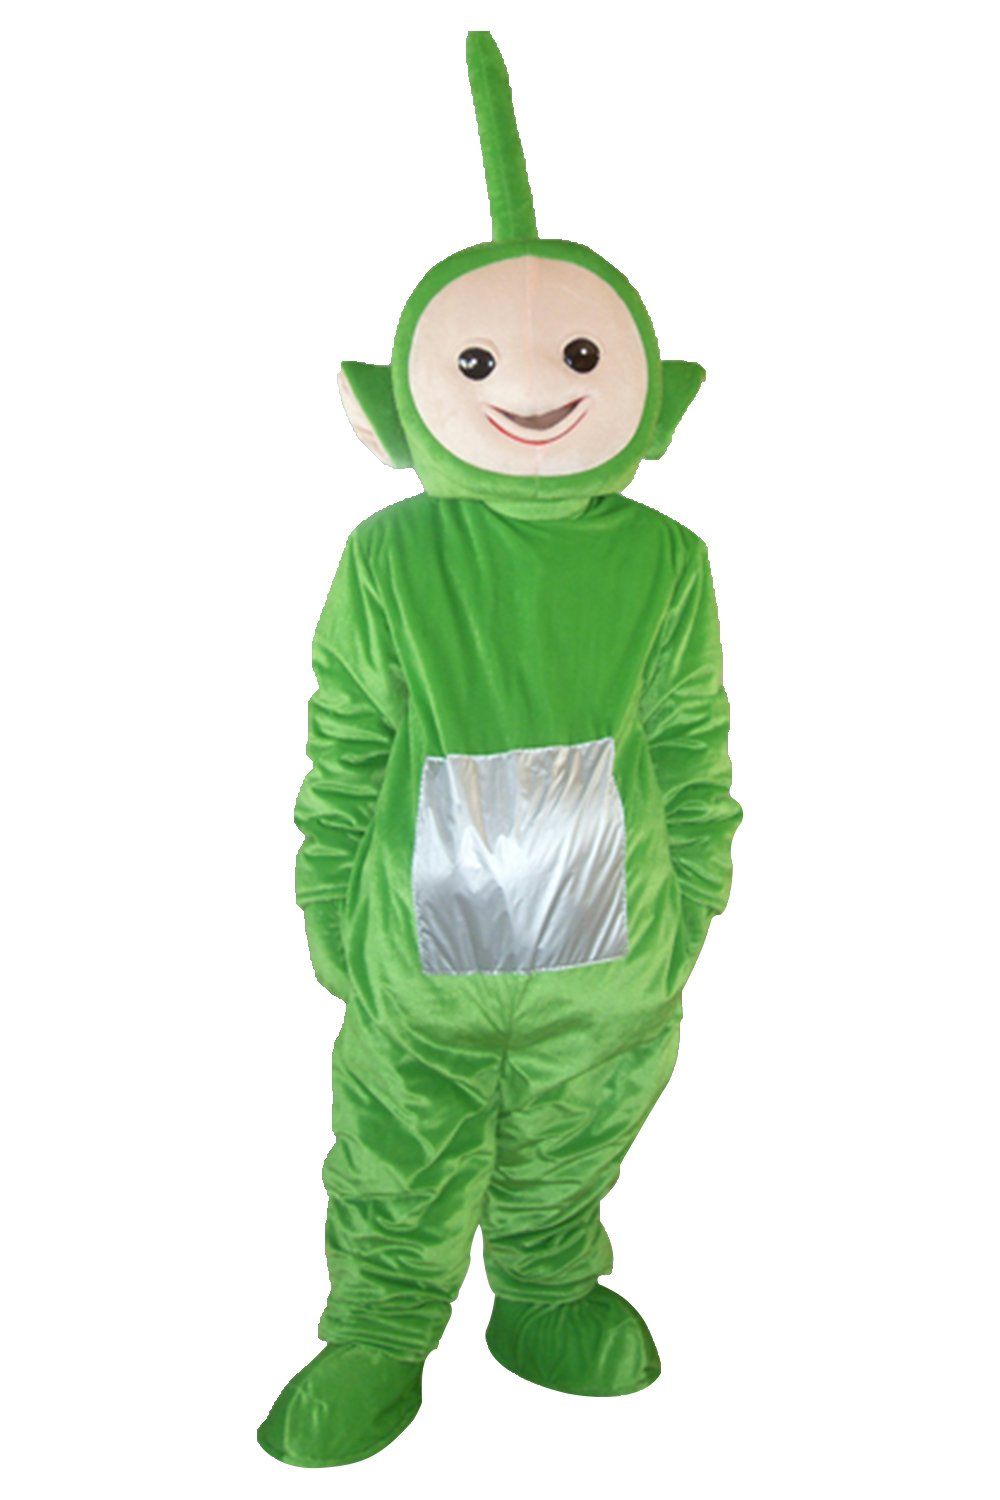 Green Teletubbies Mascot Costume Adult Size